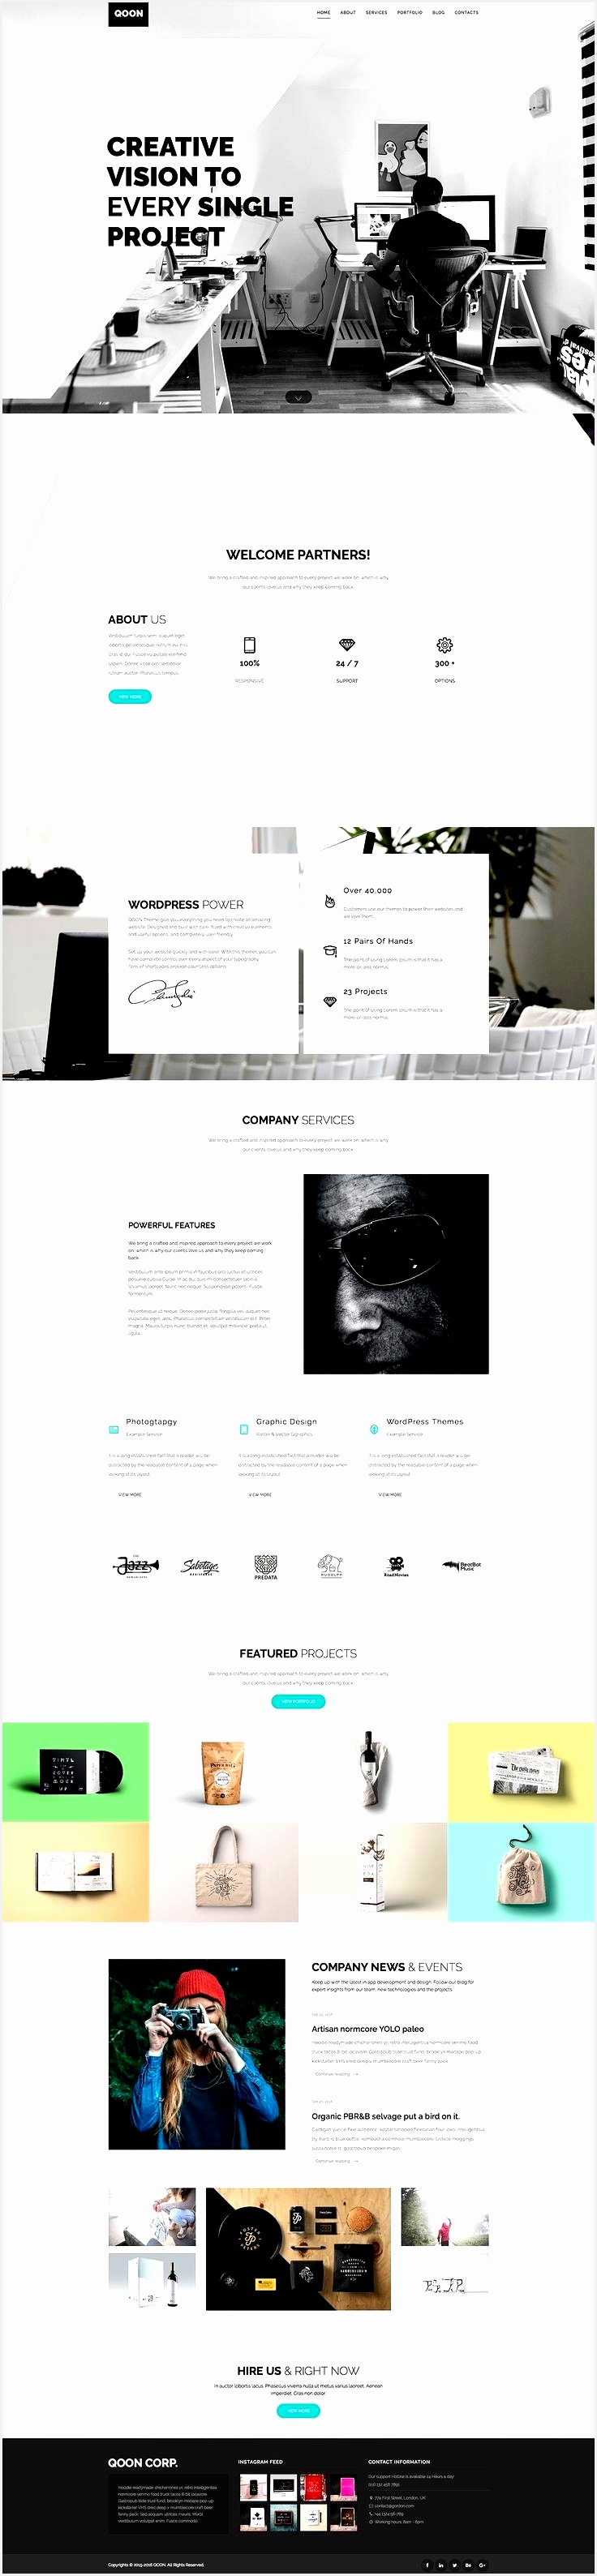 Resume Templates Free Download New Pr Resume Template Elegant Dictionary Template 0d Archives Free3177736